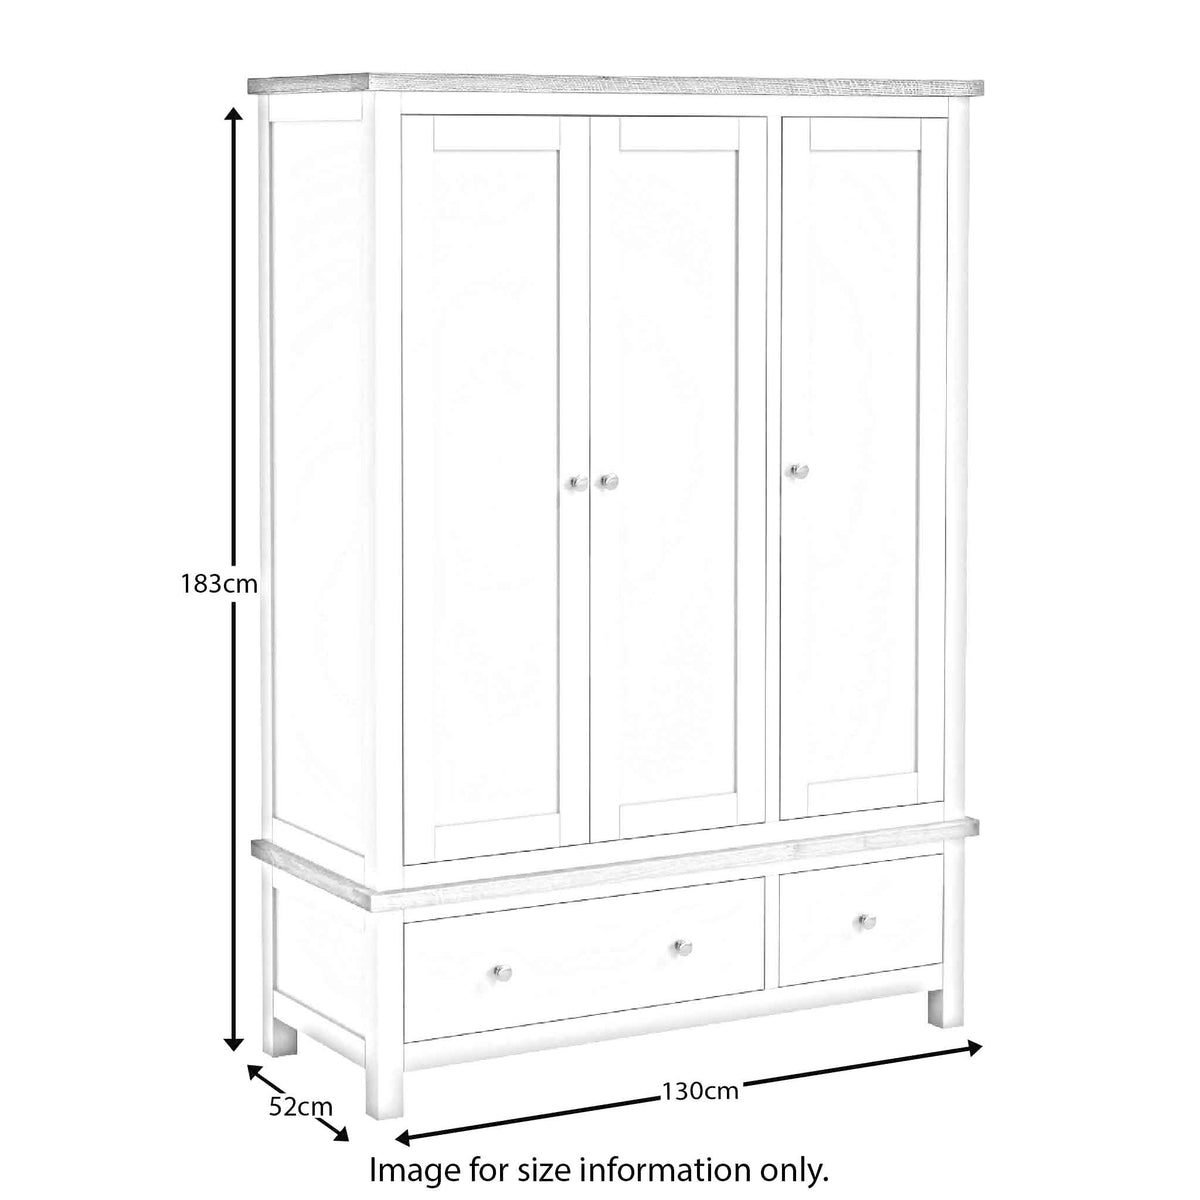 The Farrow Grey Large Wardrobe with 3 Doors & Drawers dimensions